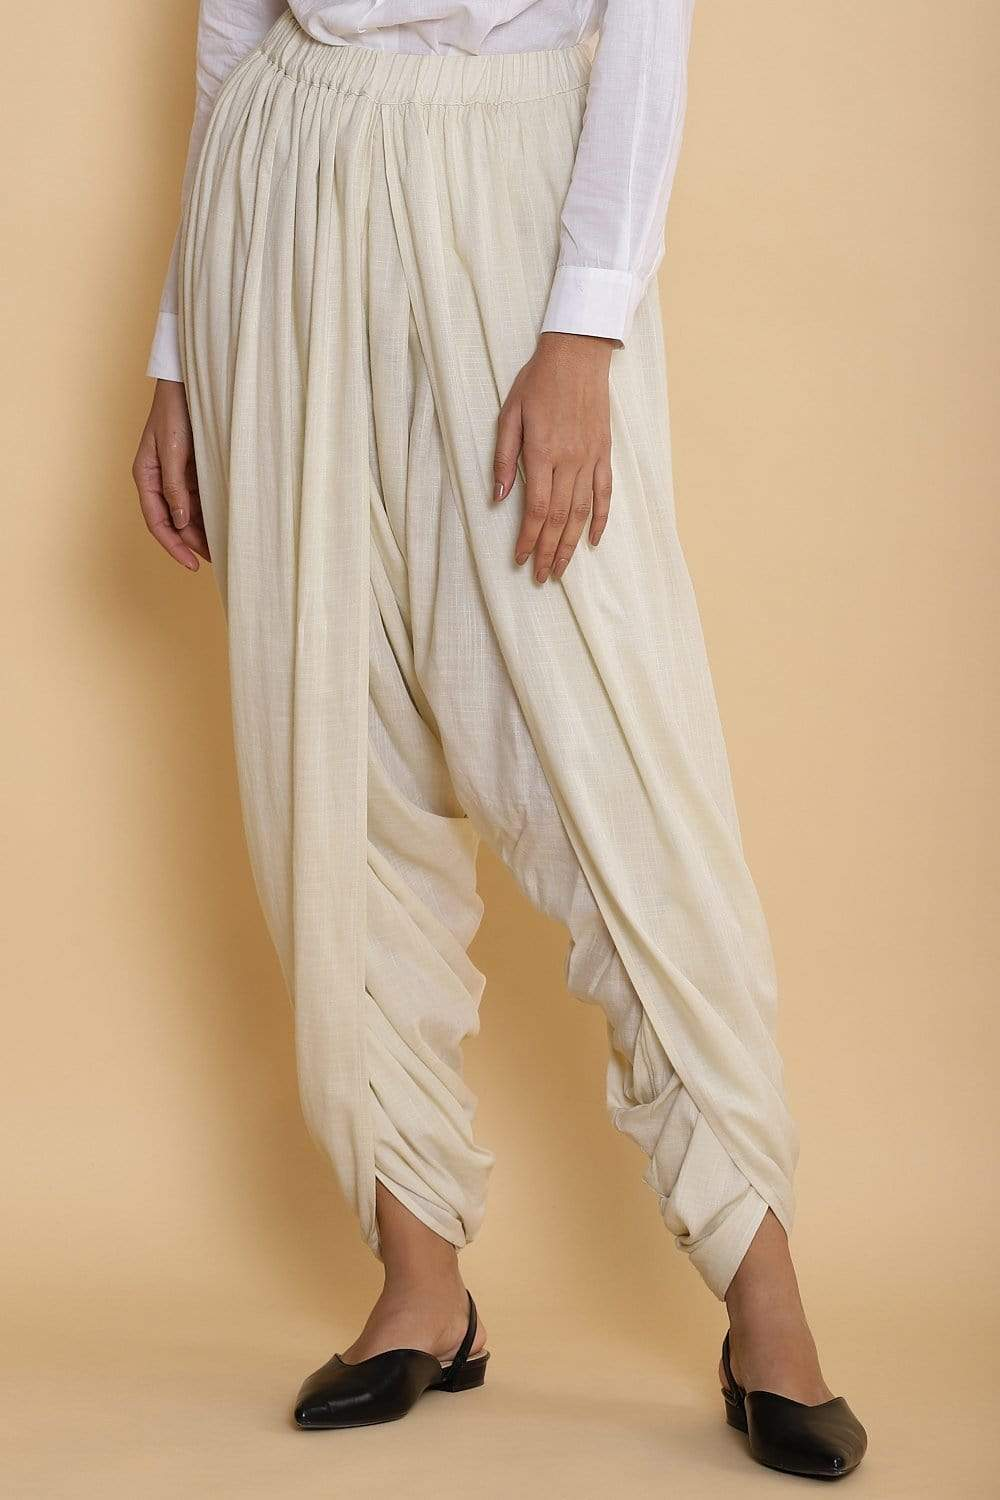 Abraham & Thakore Bottoms Ivory solid dhoti pants